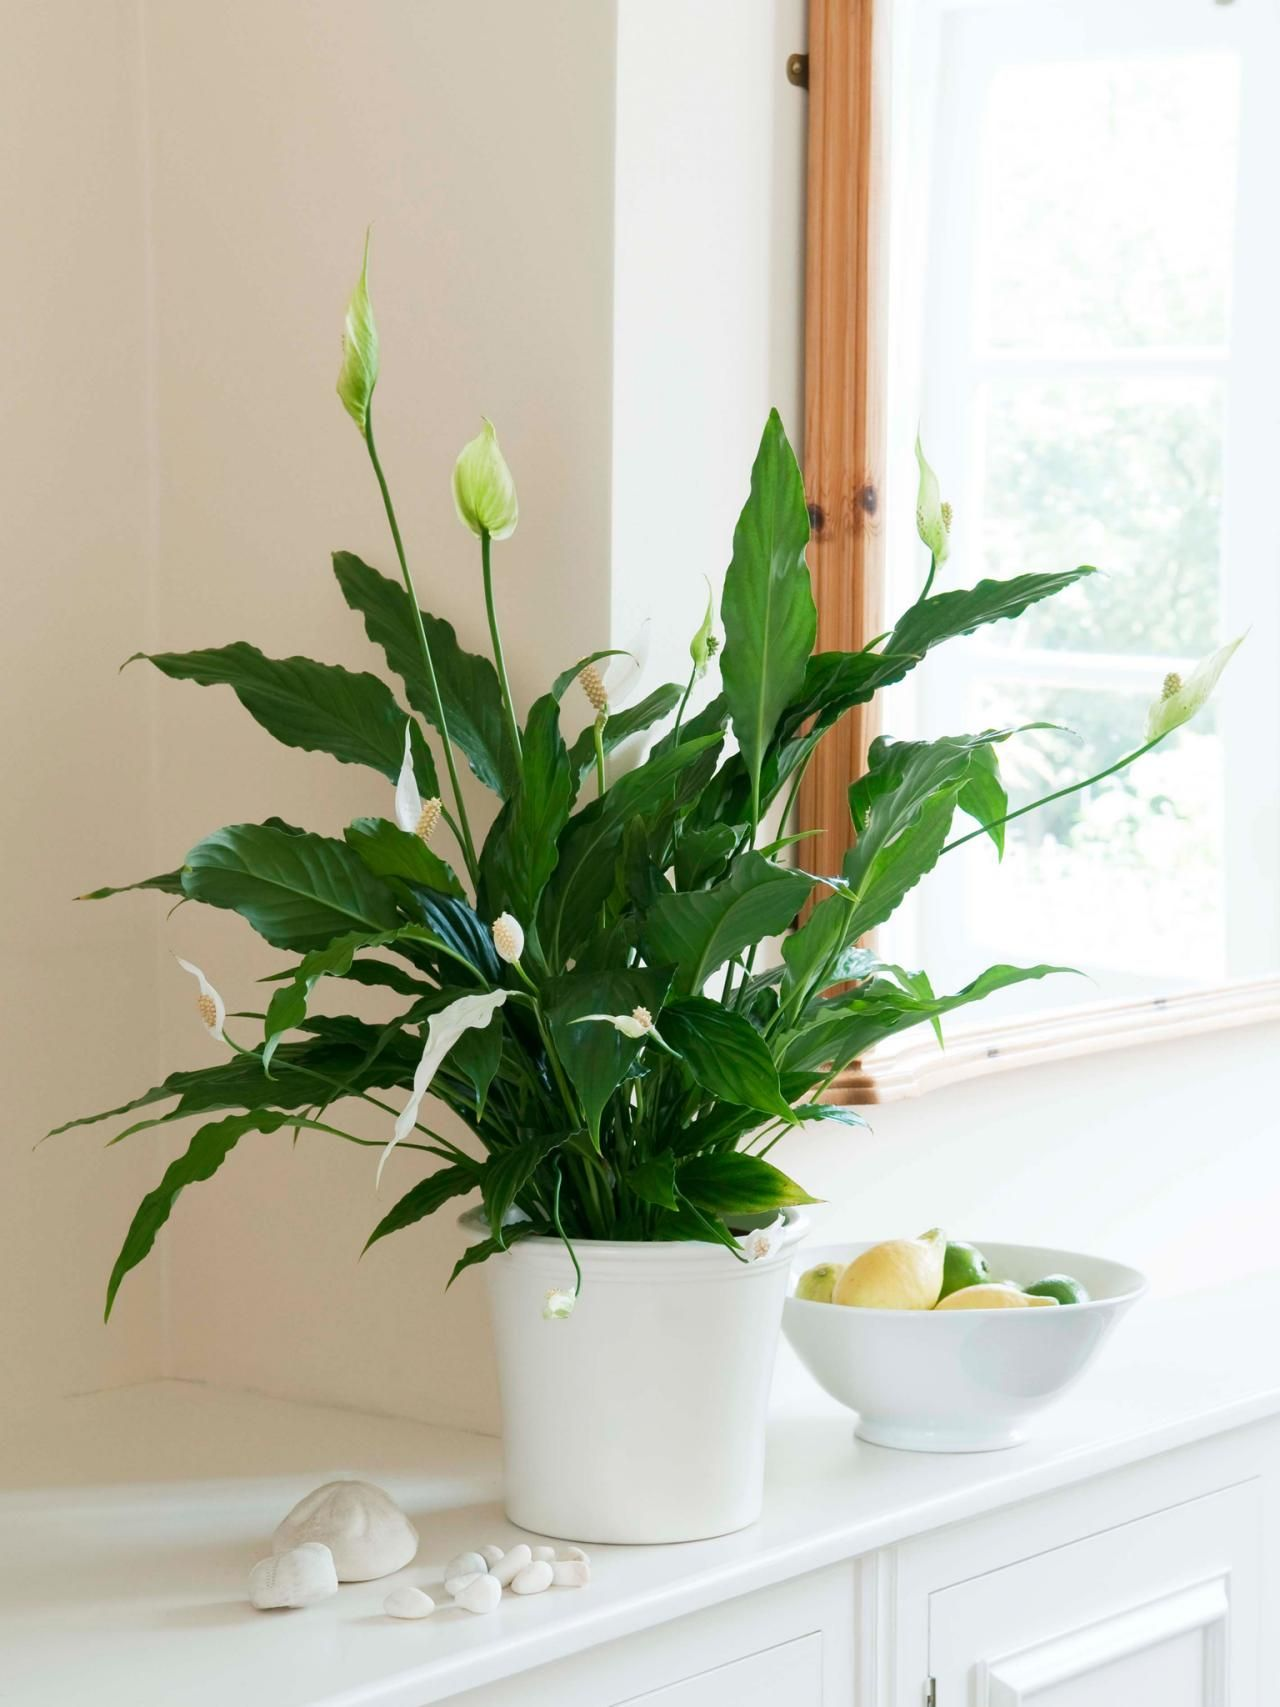 Peace lily care tips peace lily care lily care and peace lily great tips from hgtv on peace lily care izmirmasajfo Image collections